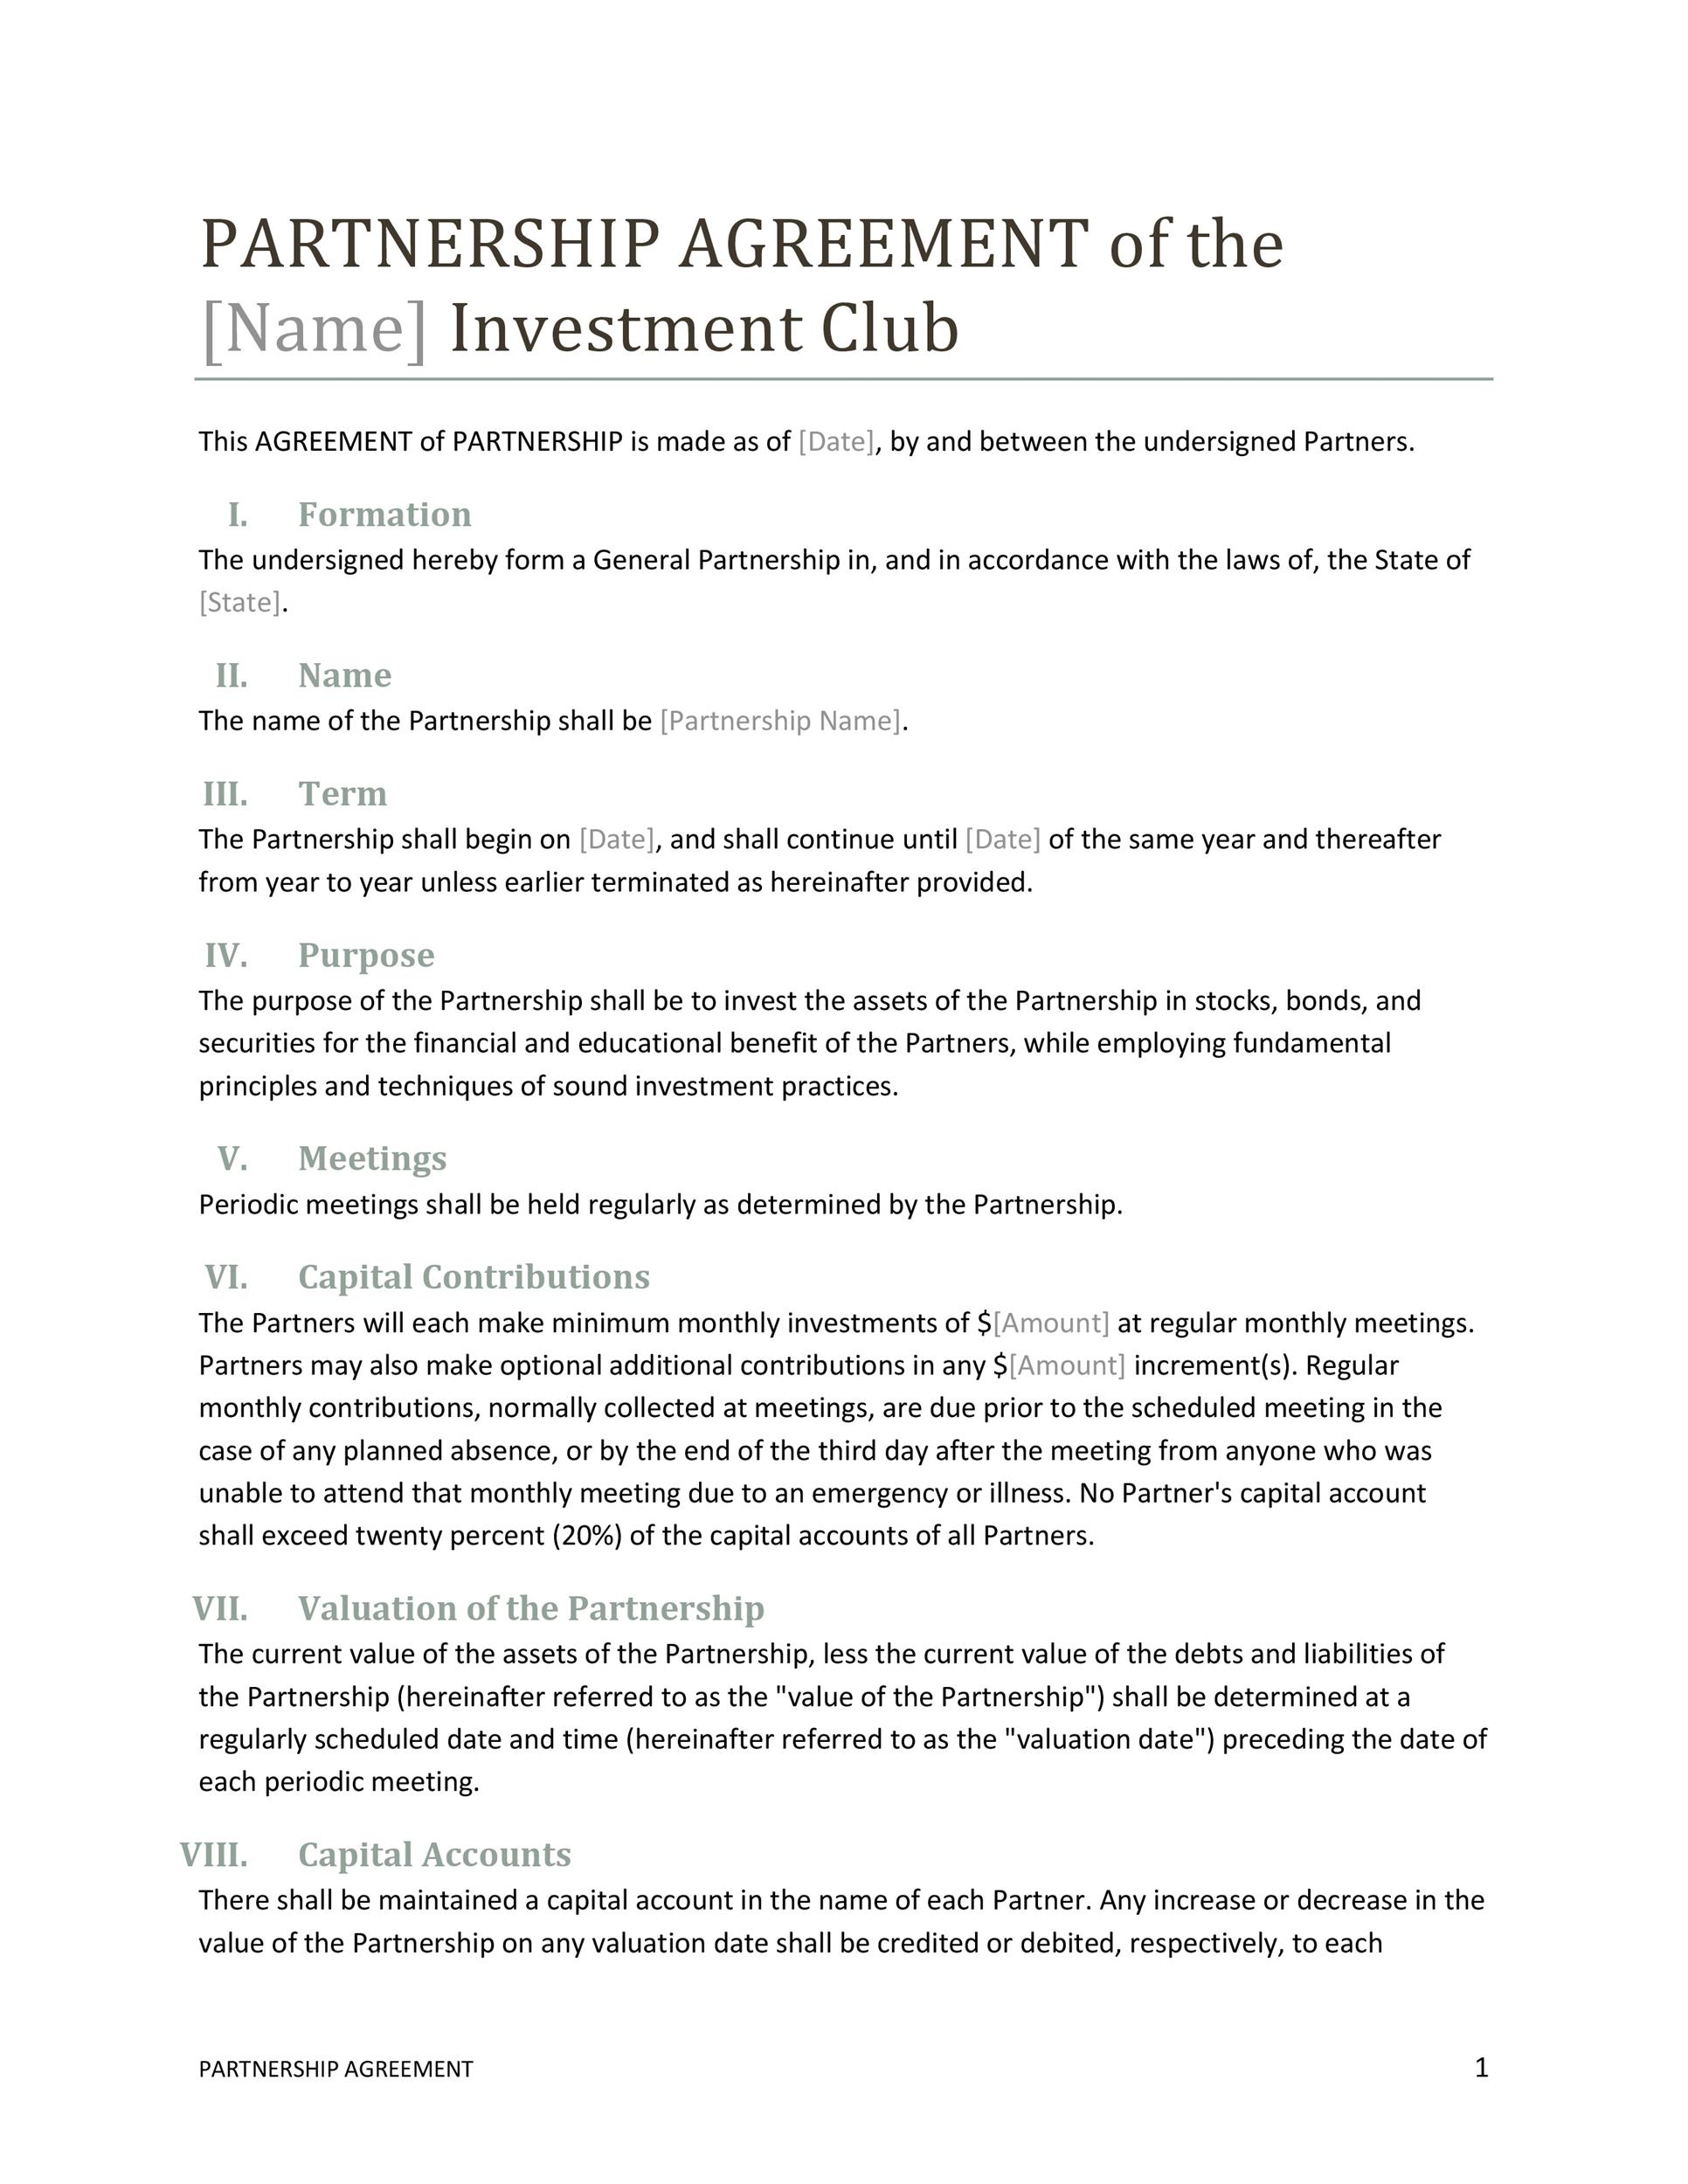 This business partnership agreement pdf template is efficient to use as it allows the user to draft an agreement simply by entering relevant information and other pertinent details on the form provided. Partnership Agreement Template By Business In Box Collaboration Example